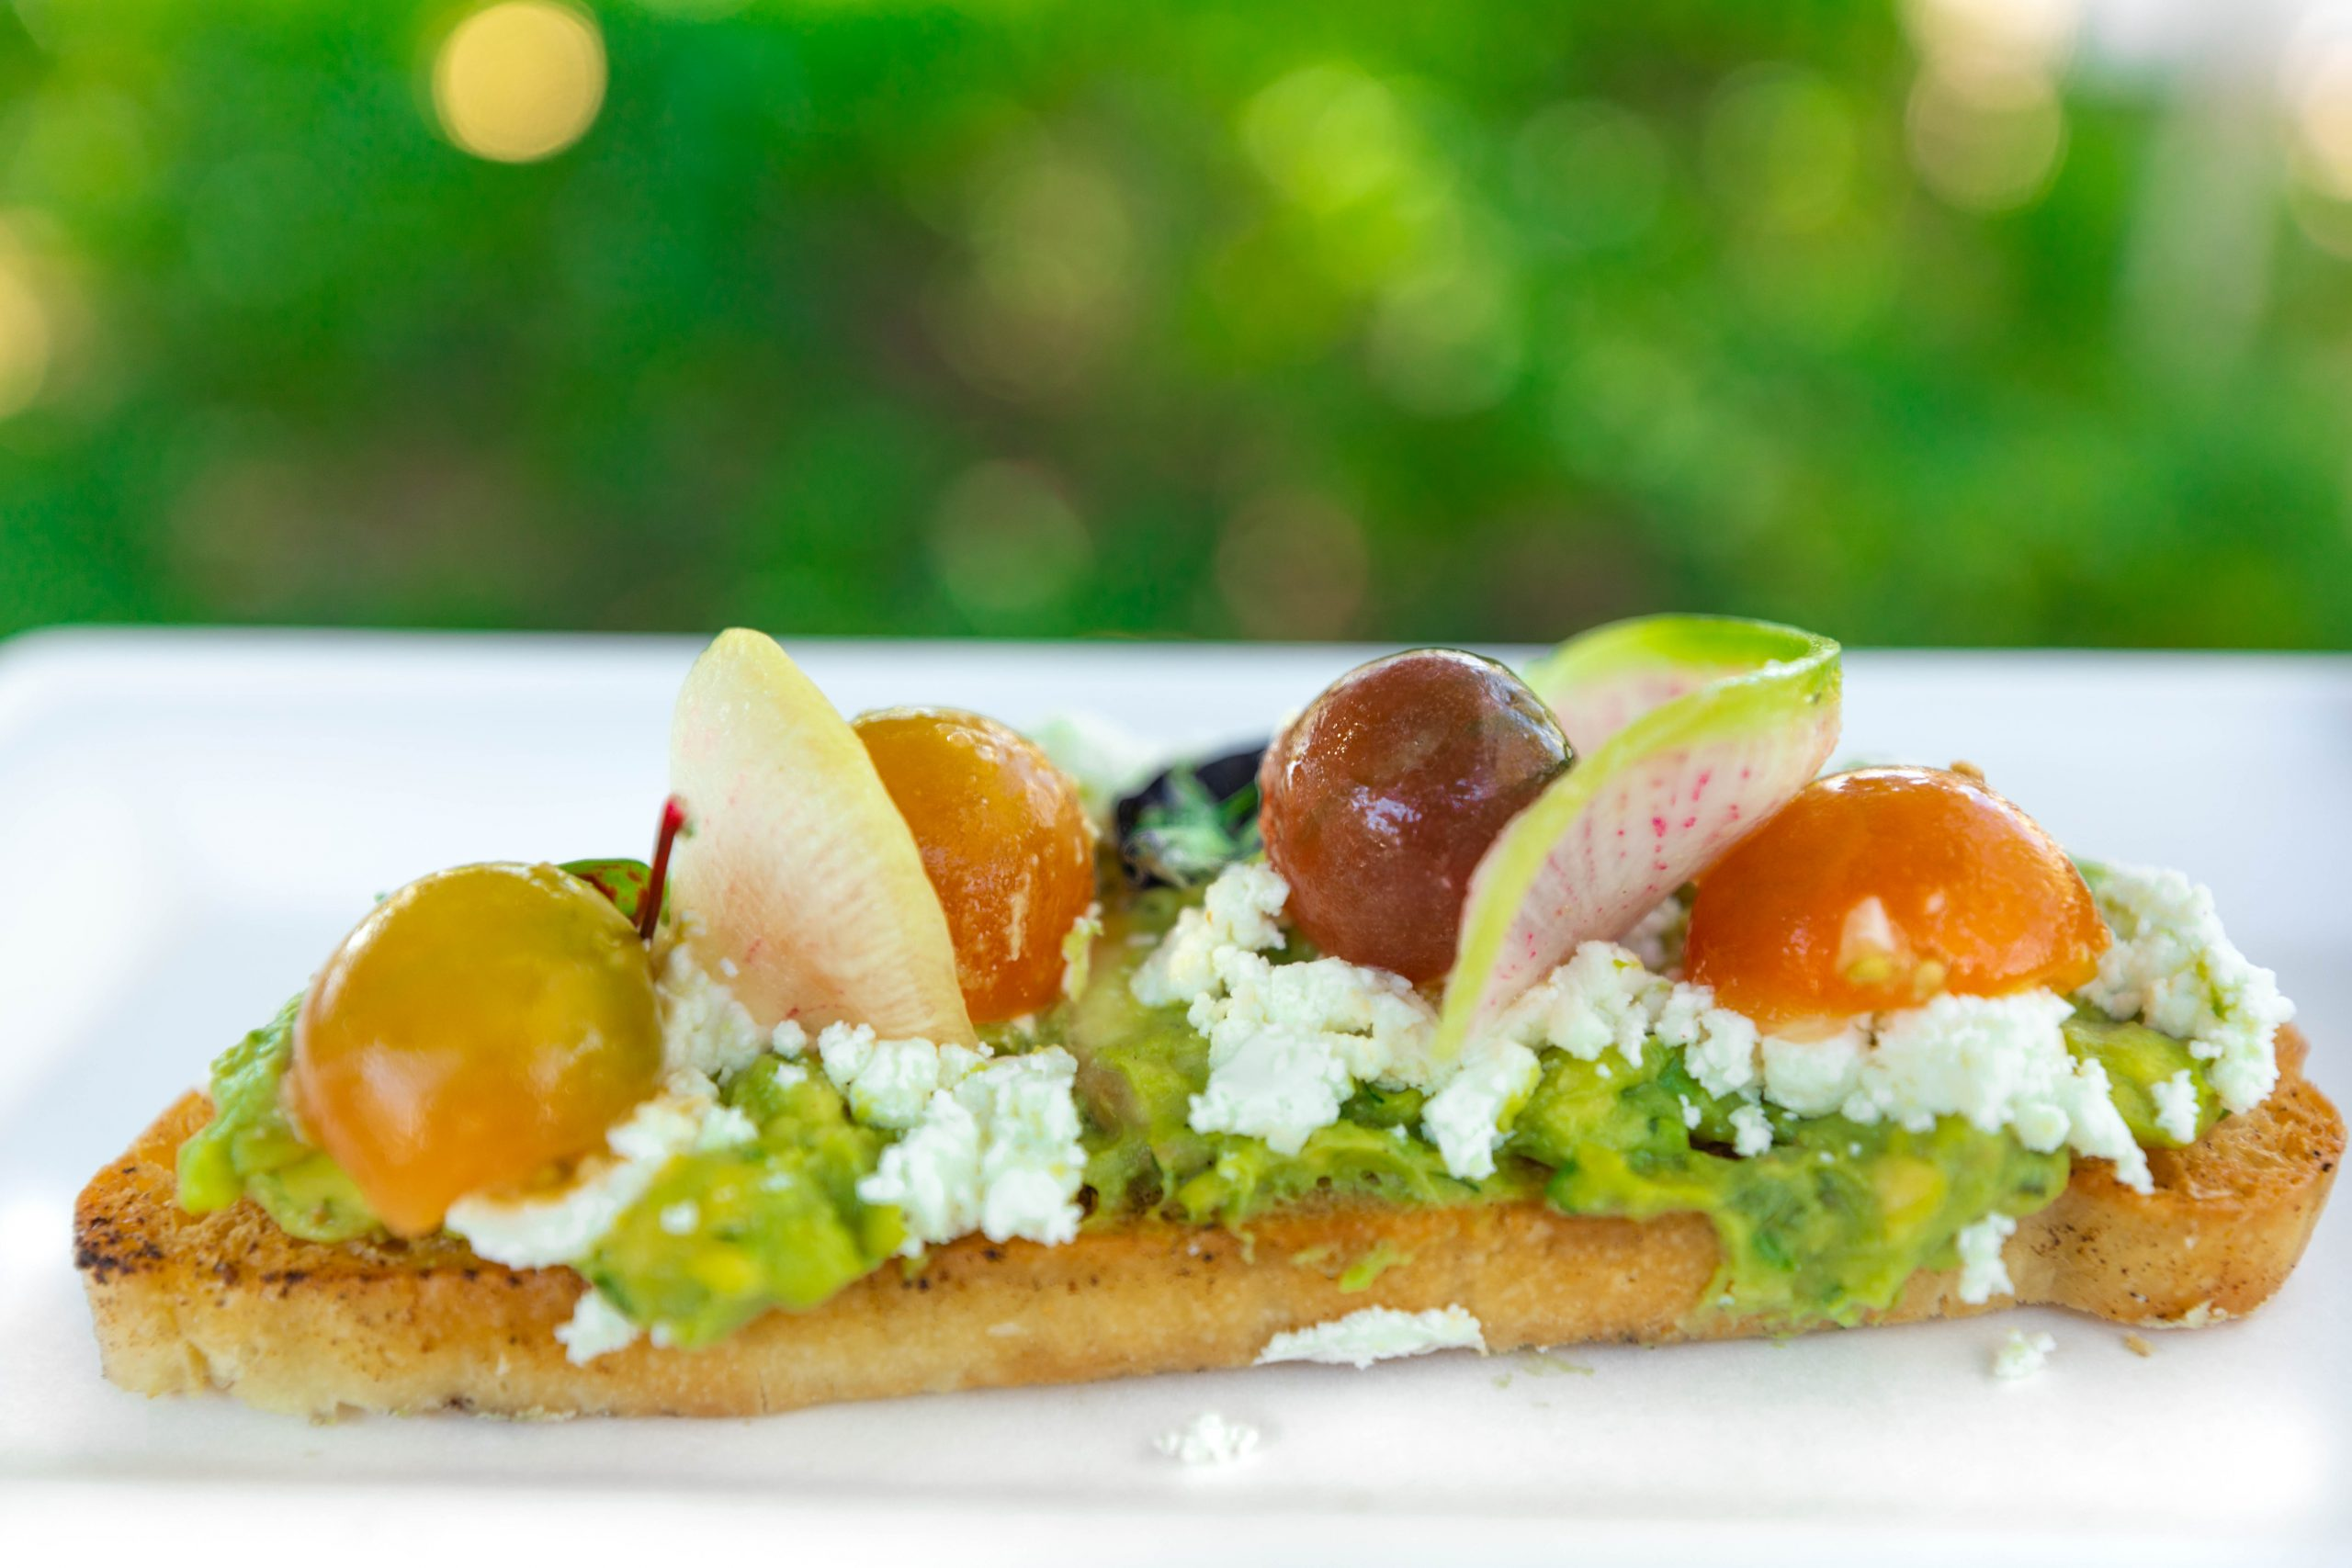 Avocado Toast Marinated toybox tomatoes & fresh goat cheese on toasted ciabatta photographed by Luxury Travel Writer Annie Fairfax Walt Disney World Epcot Food and Drink Guide